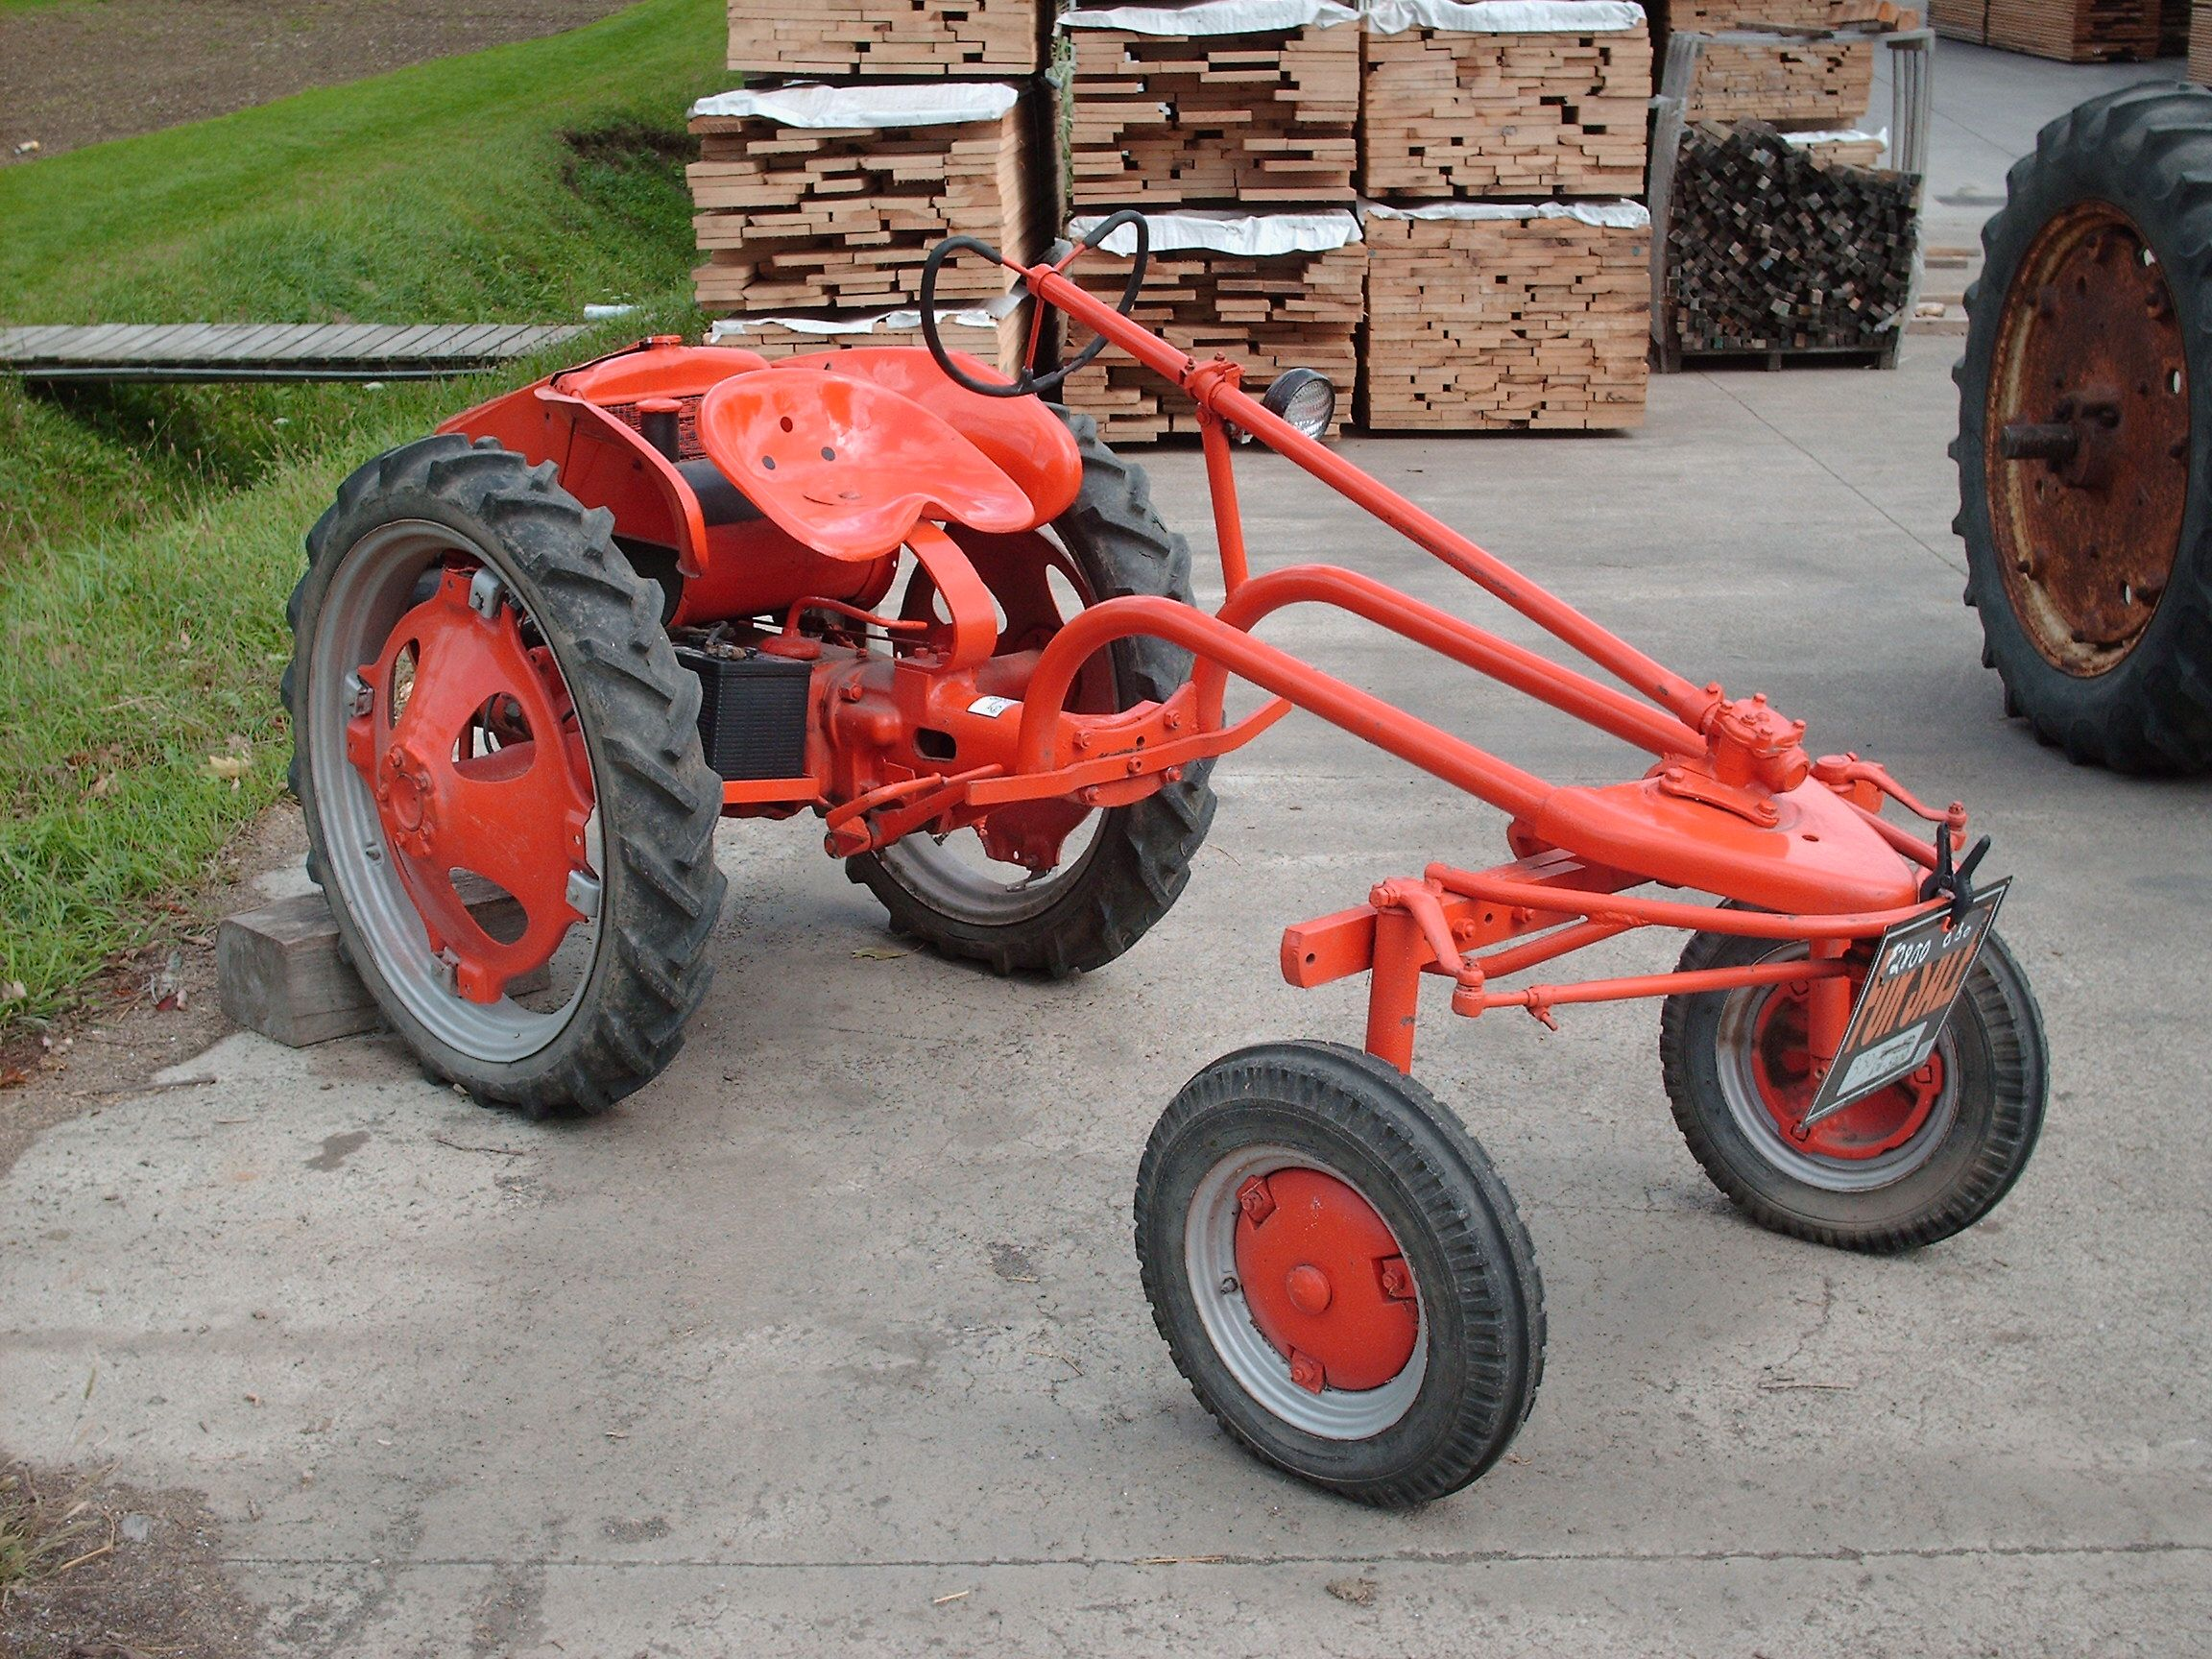 Allis Chalmers G Series Tractor For Sale In Berlin My Father Owned One Of These Rare Tractors Tractors For Sale Vintage Tractors